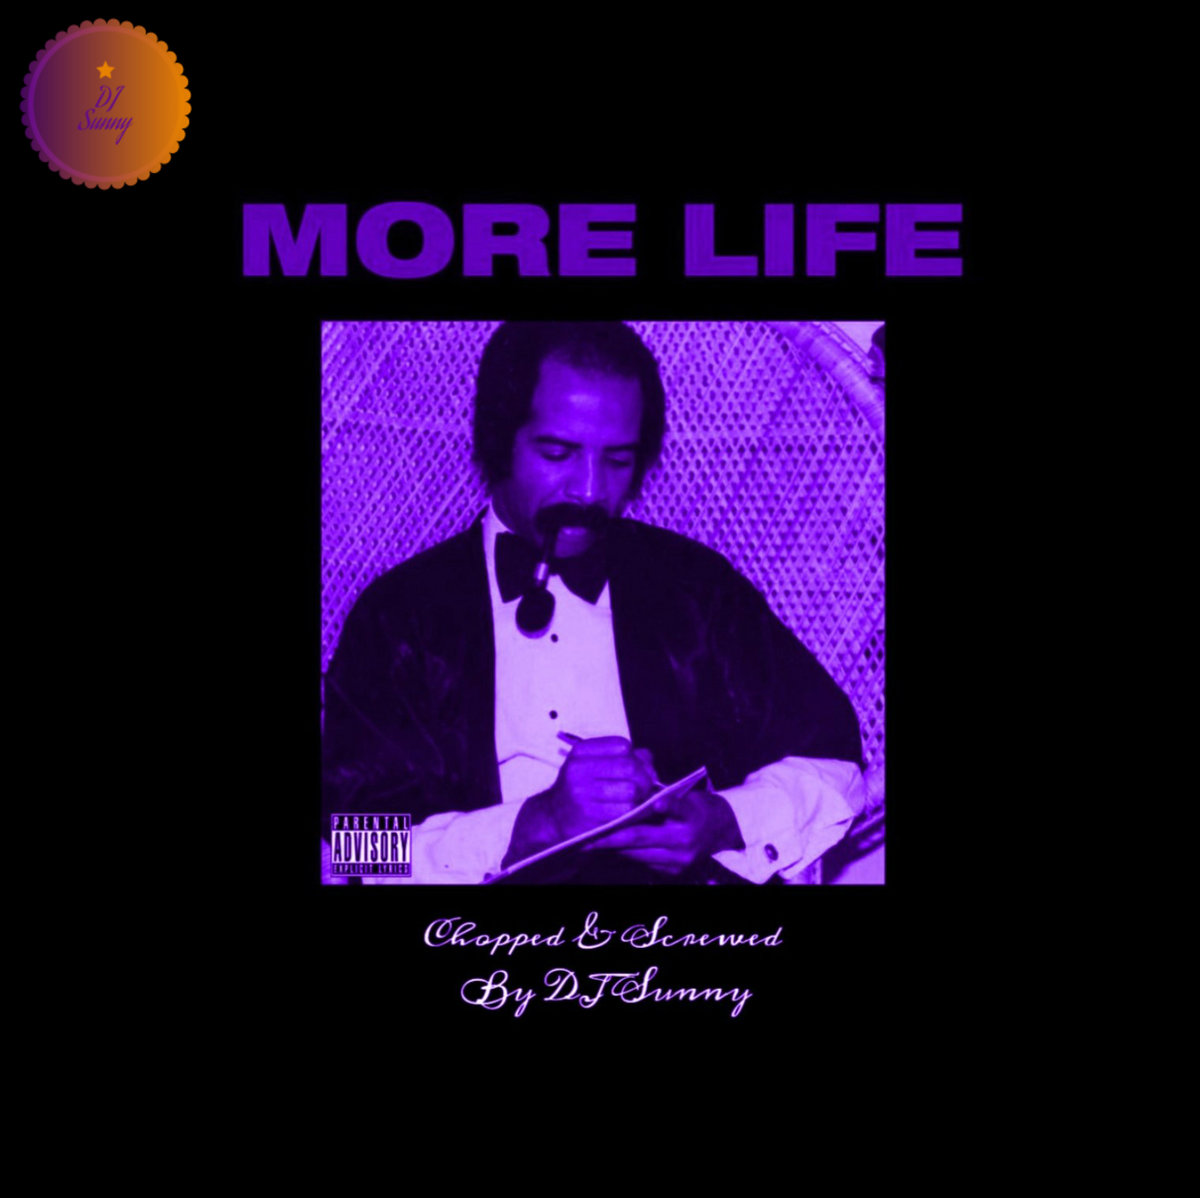 More Life (Chopped & Screwed By Sunny Chops) | Sunny Chops